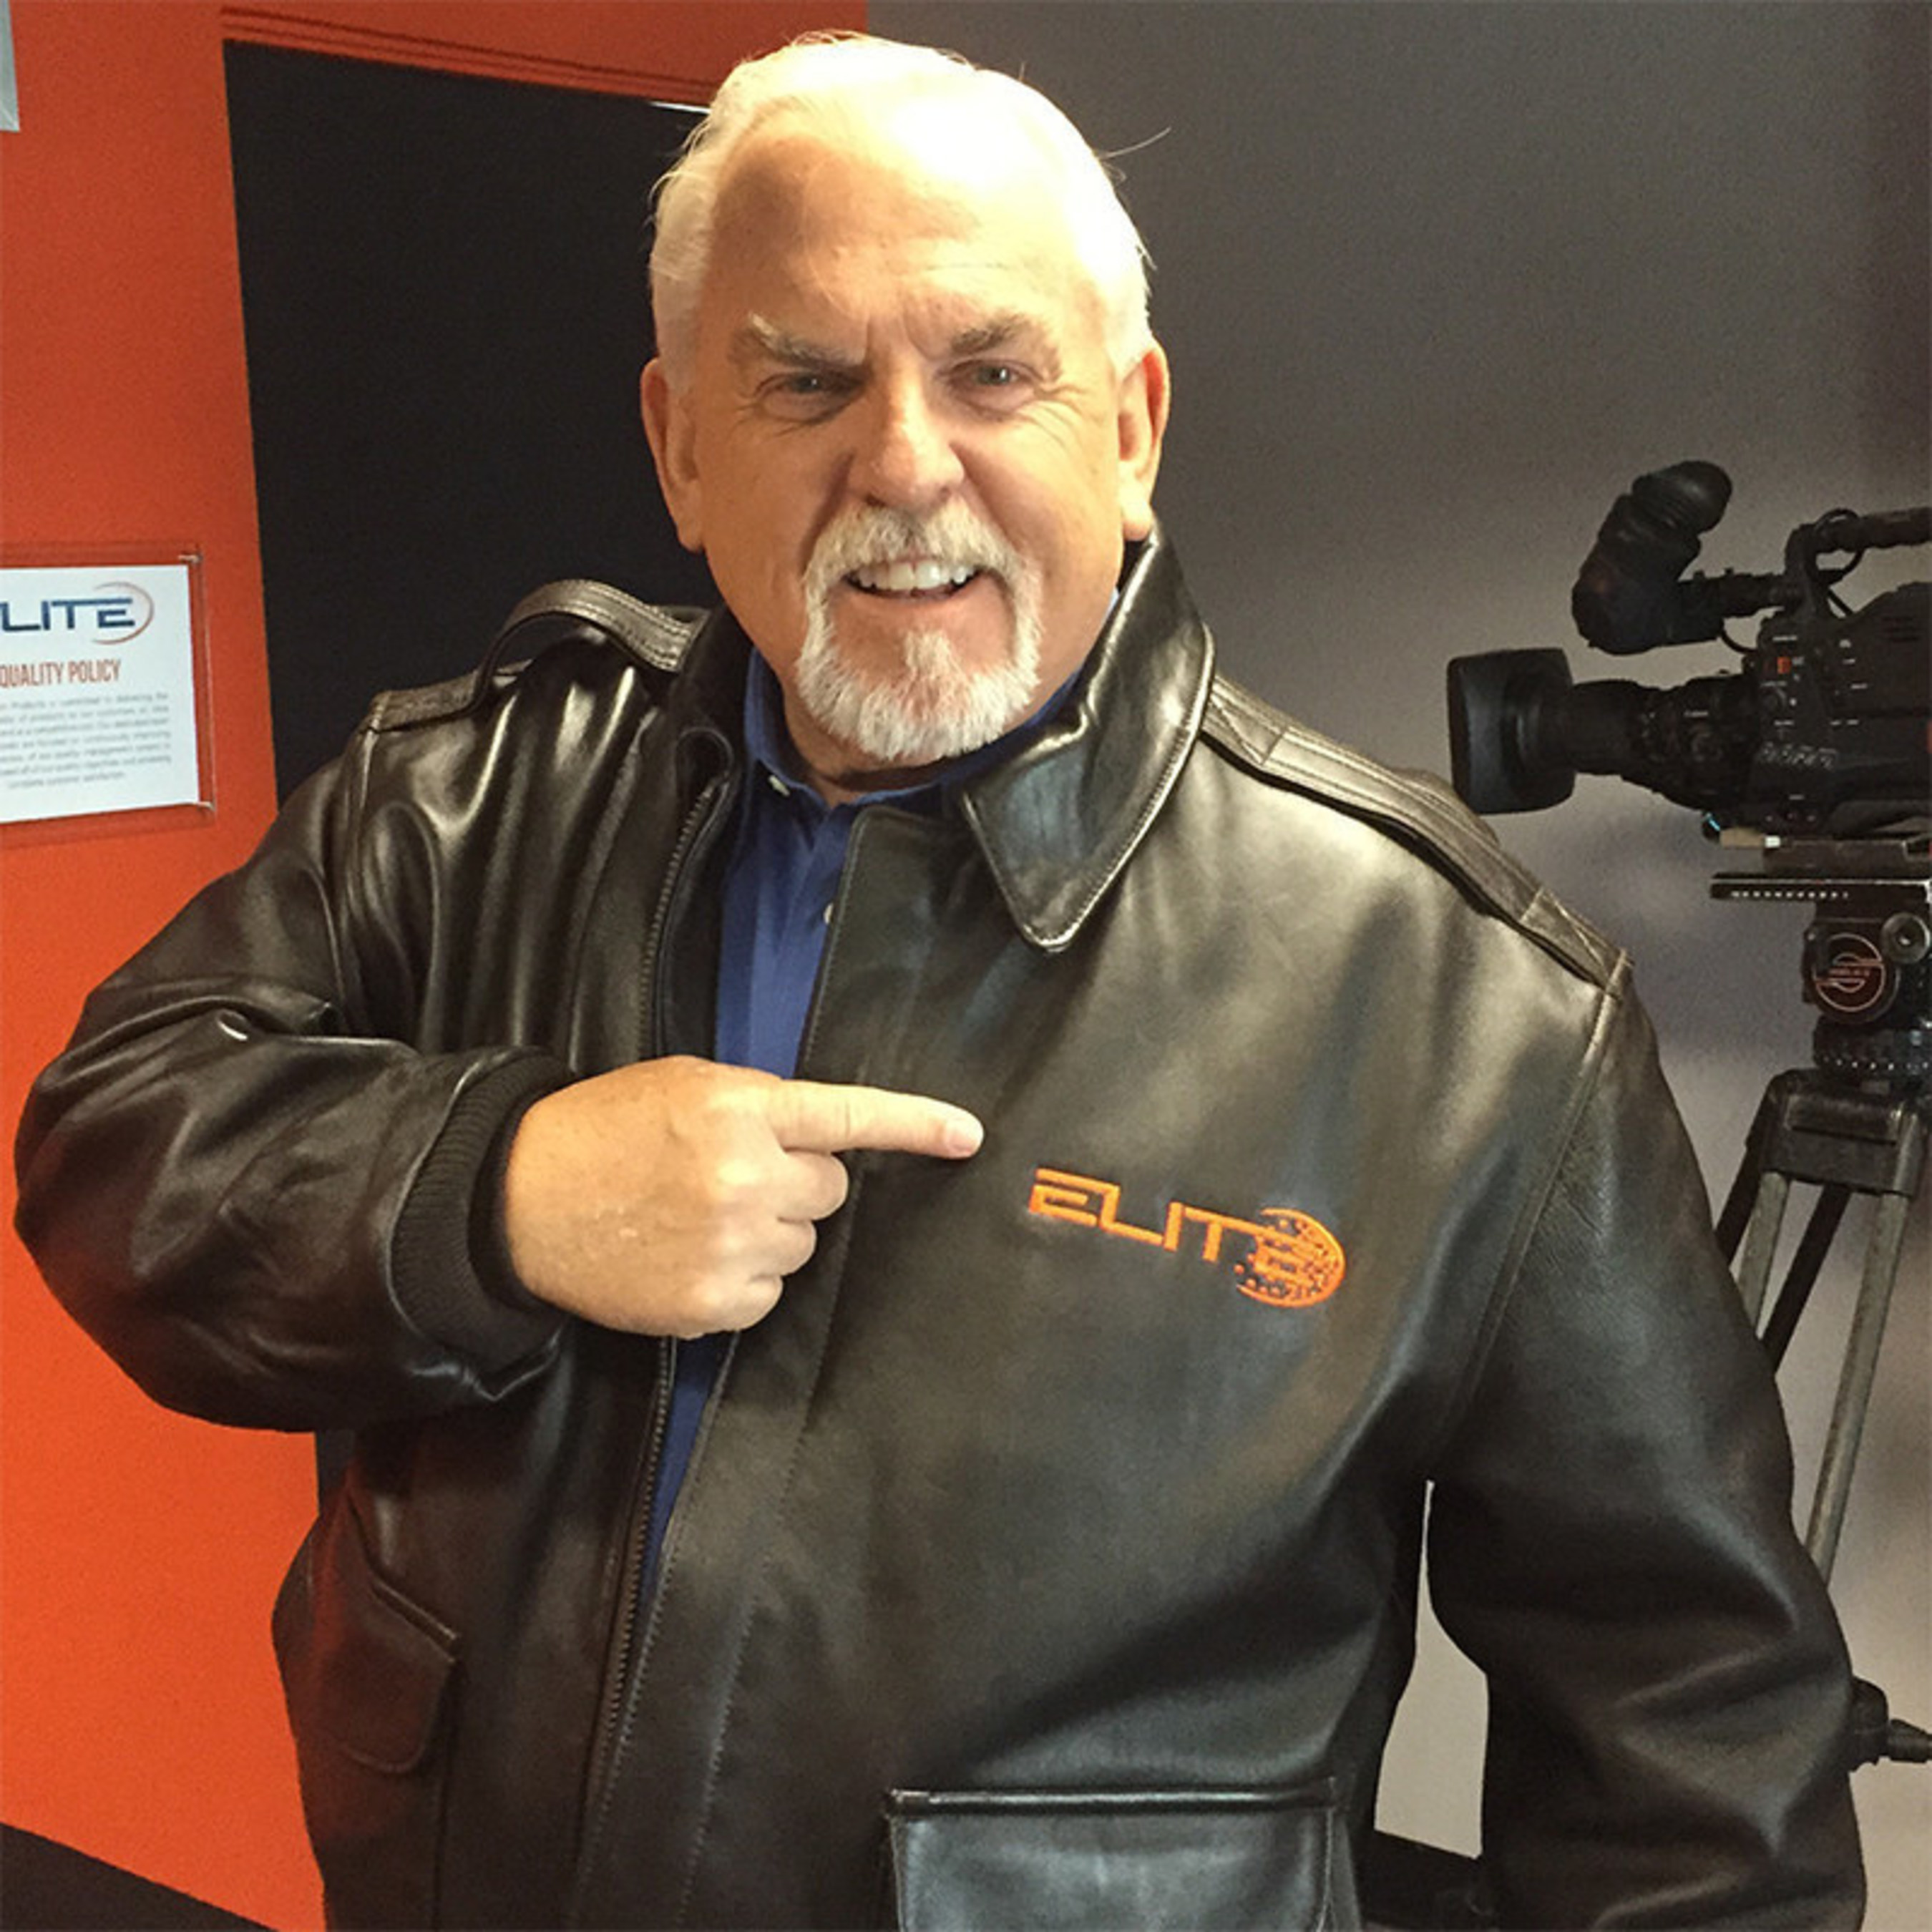 John Ratzenberger Becomes Official Ambassador of Elite Aviation Products